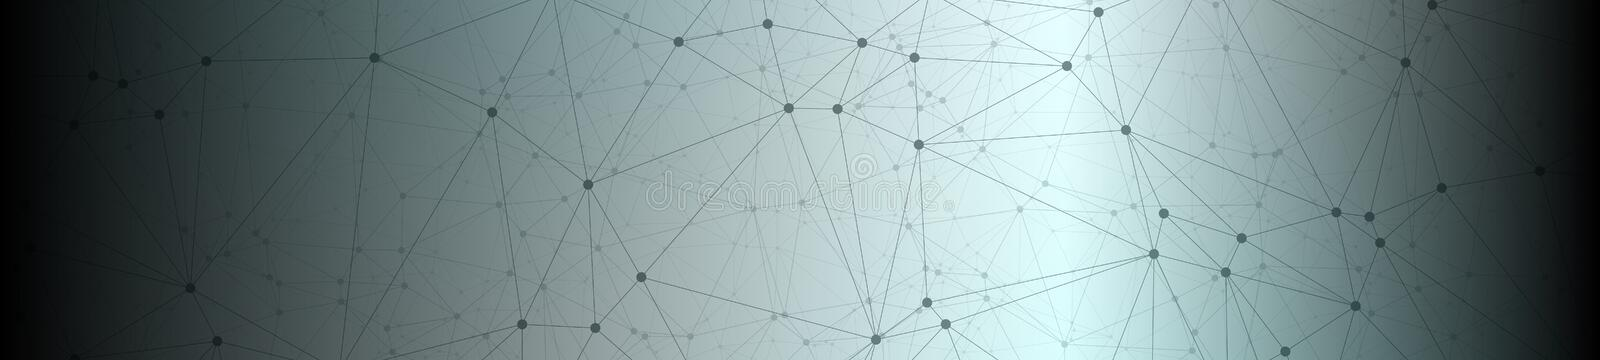 Digital data cyber network vector lines connected structure stock illustration